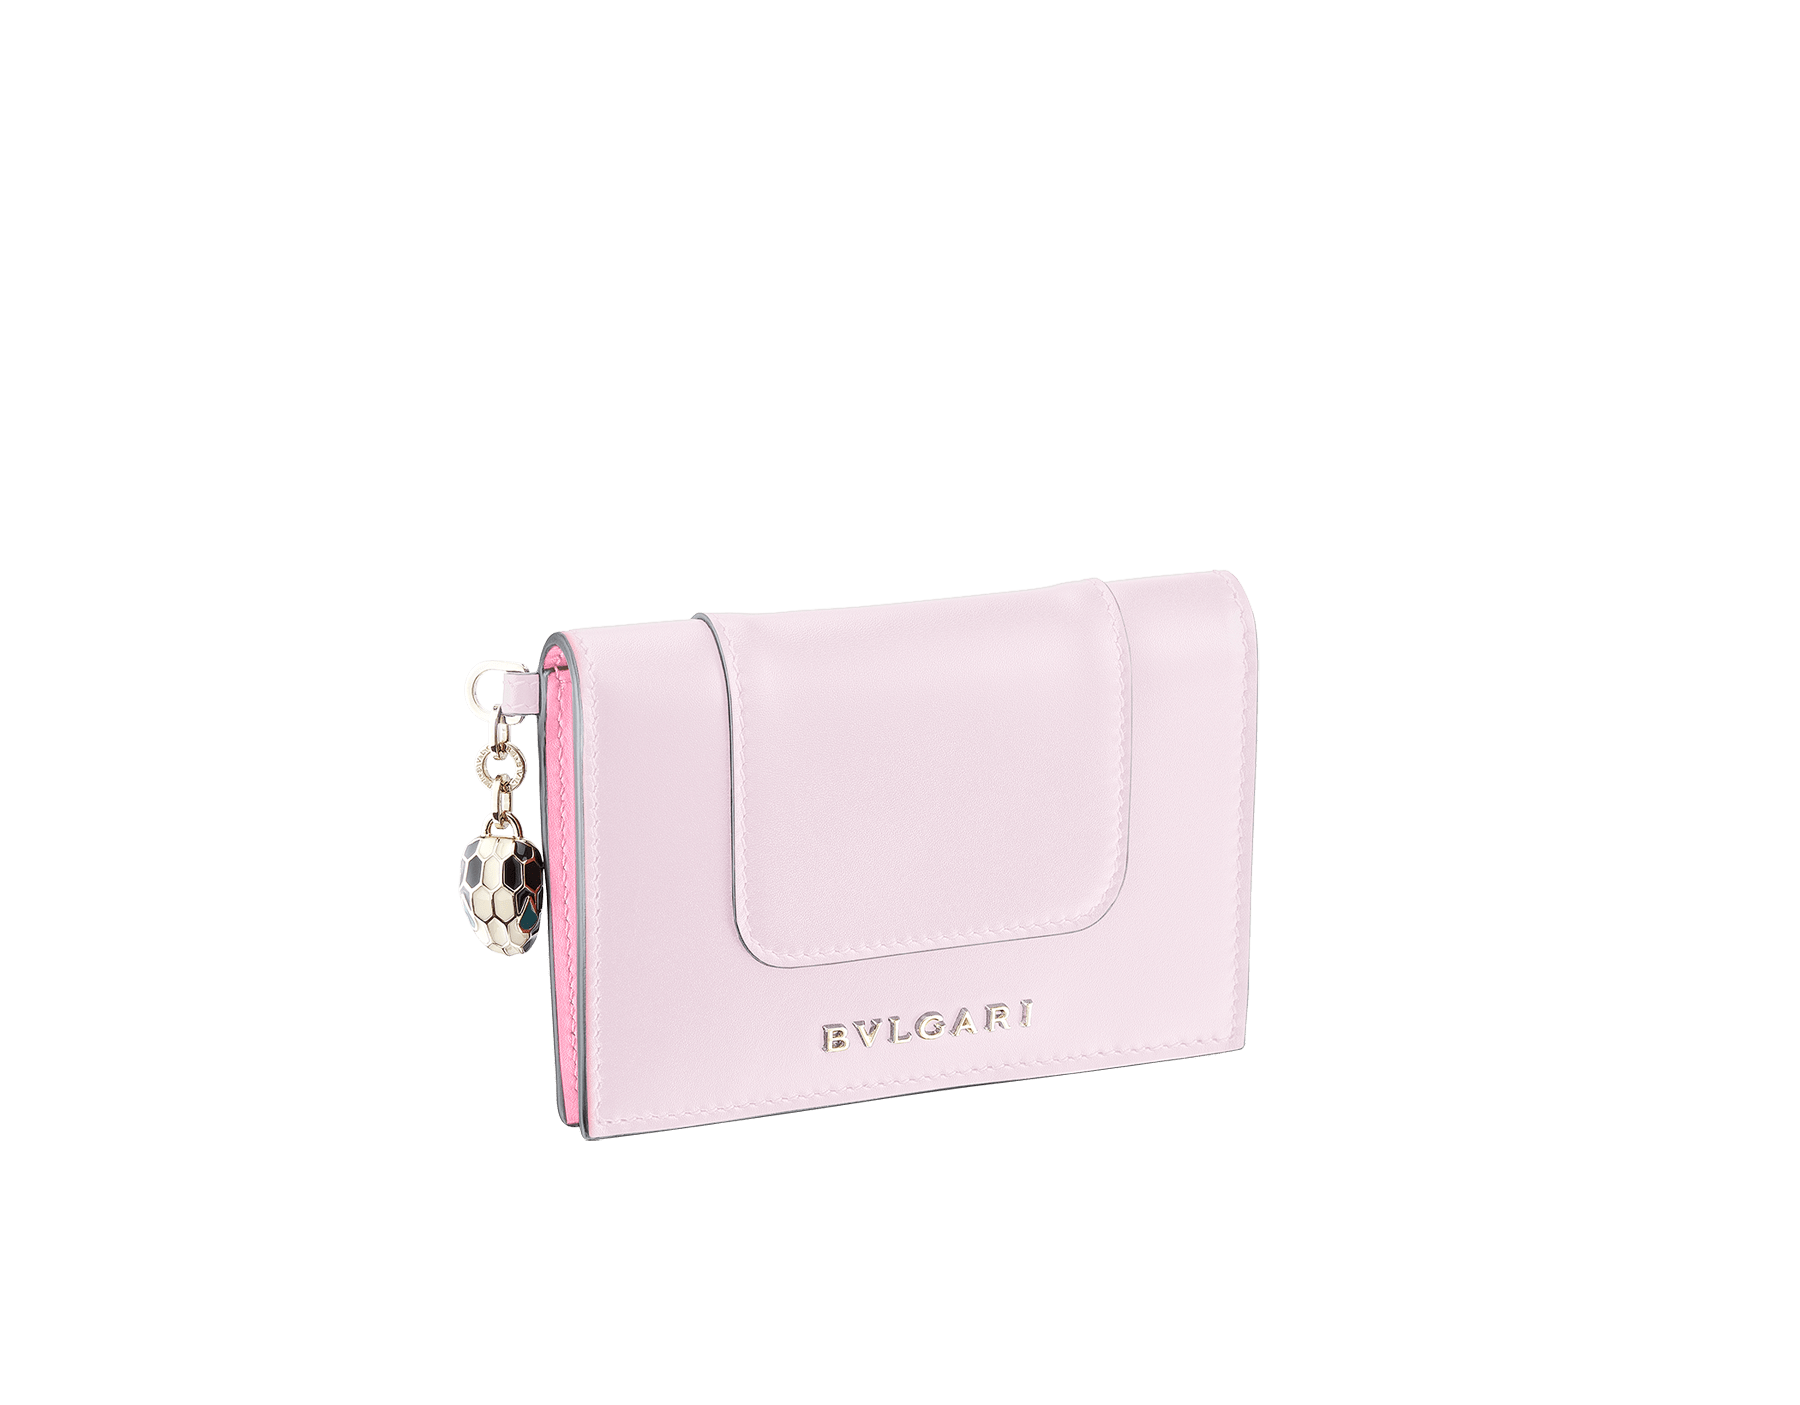 Serpenti Forever folded credit card holder in rosa di francia calf leather. Iconic snakehead charm in black and white enamel, with green malachite enamel eyes. 289060 image 1